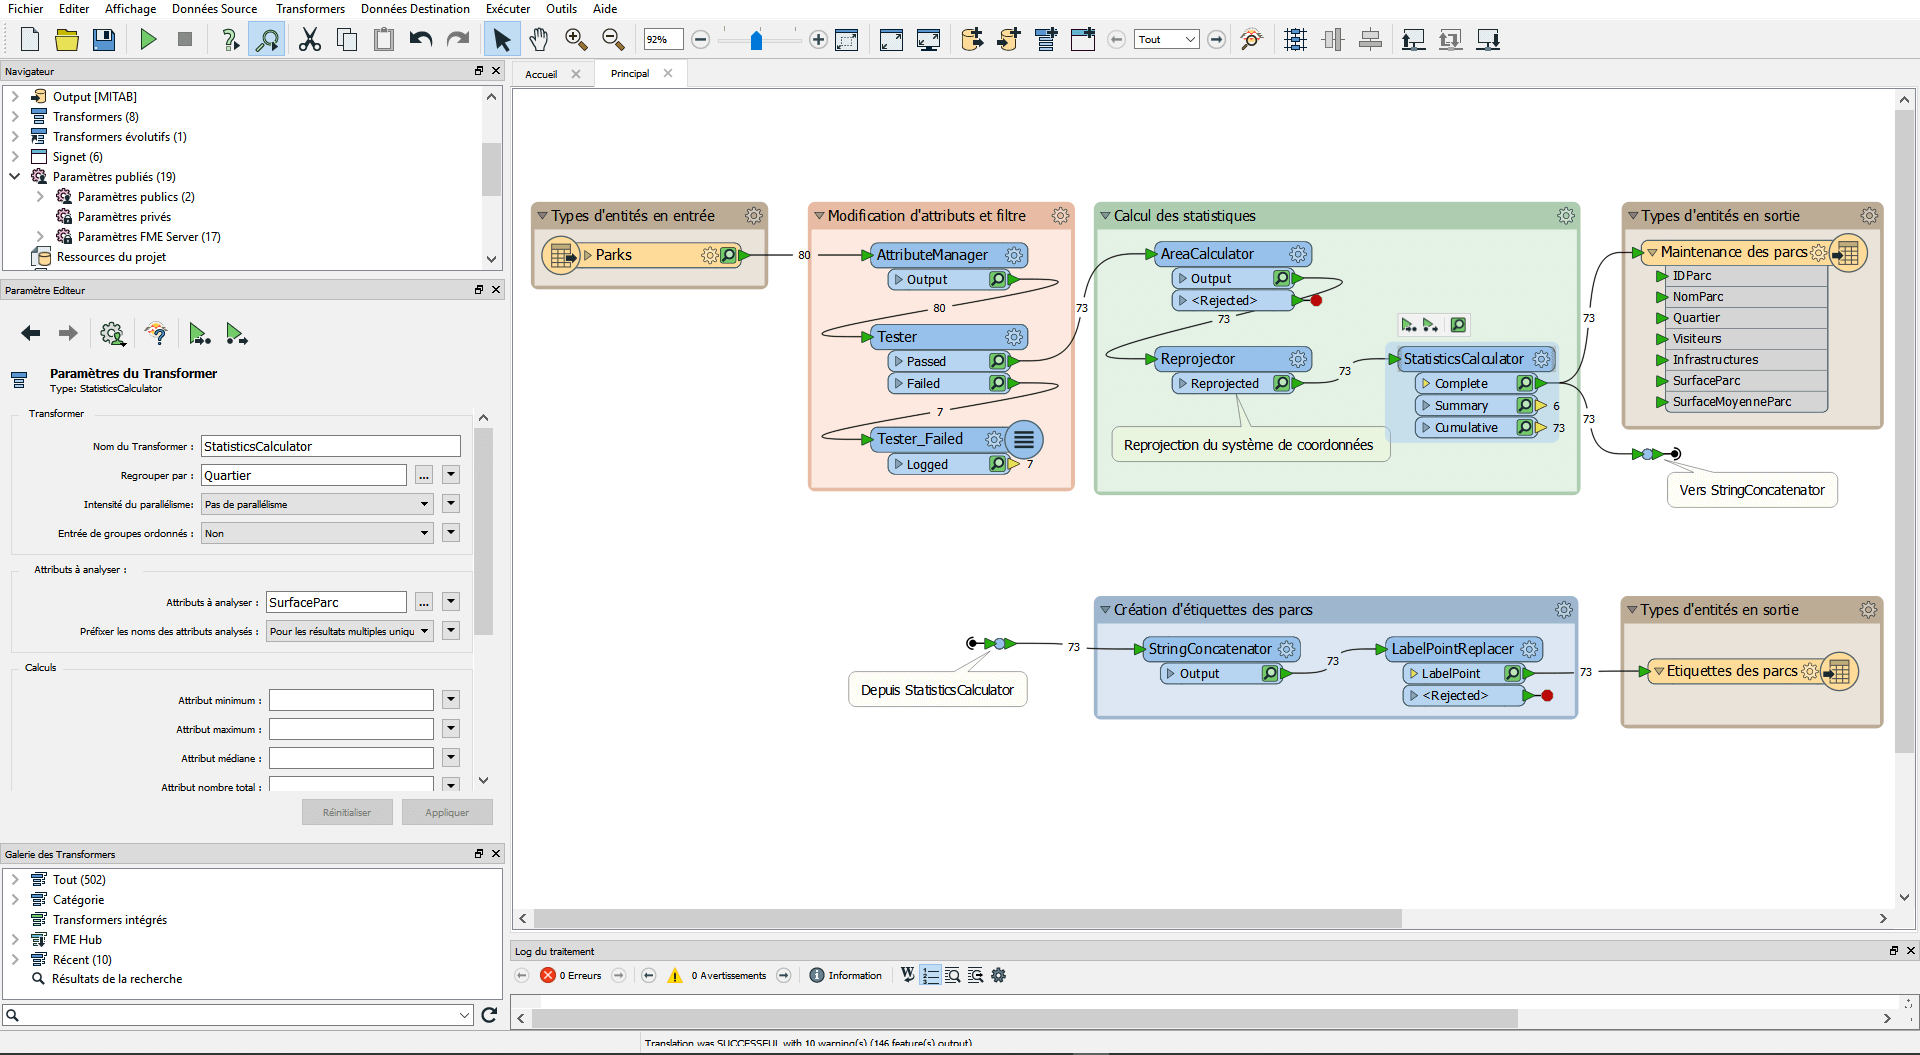 FME Workbench Interface